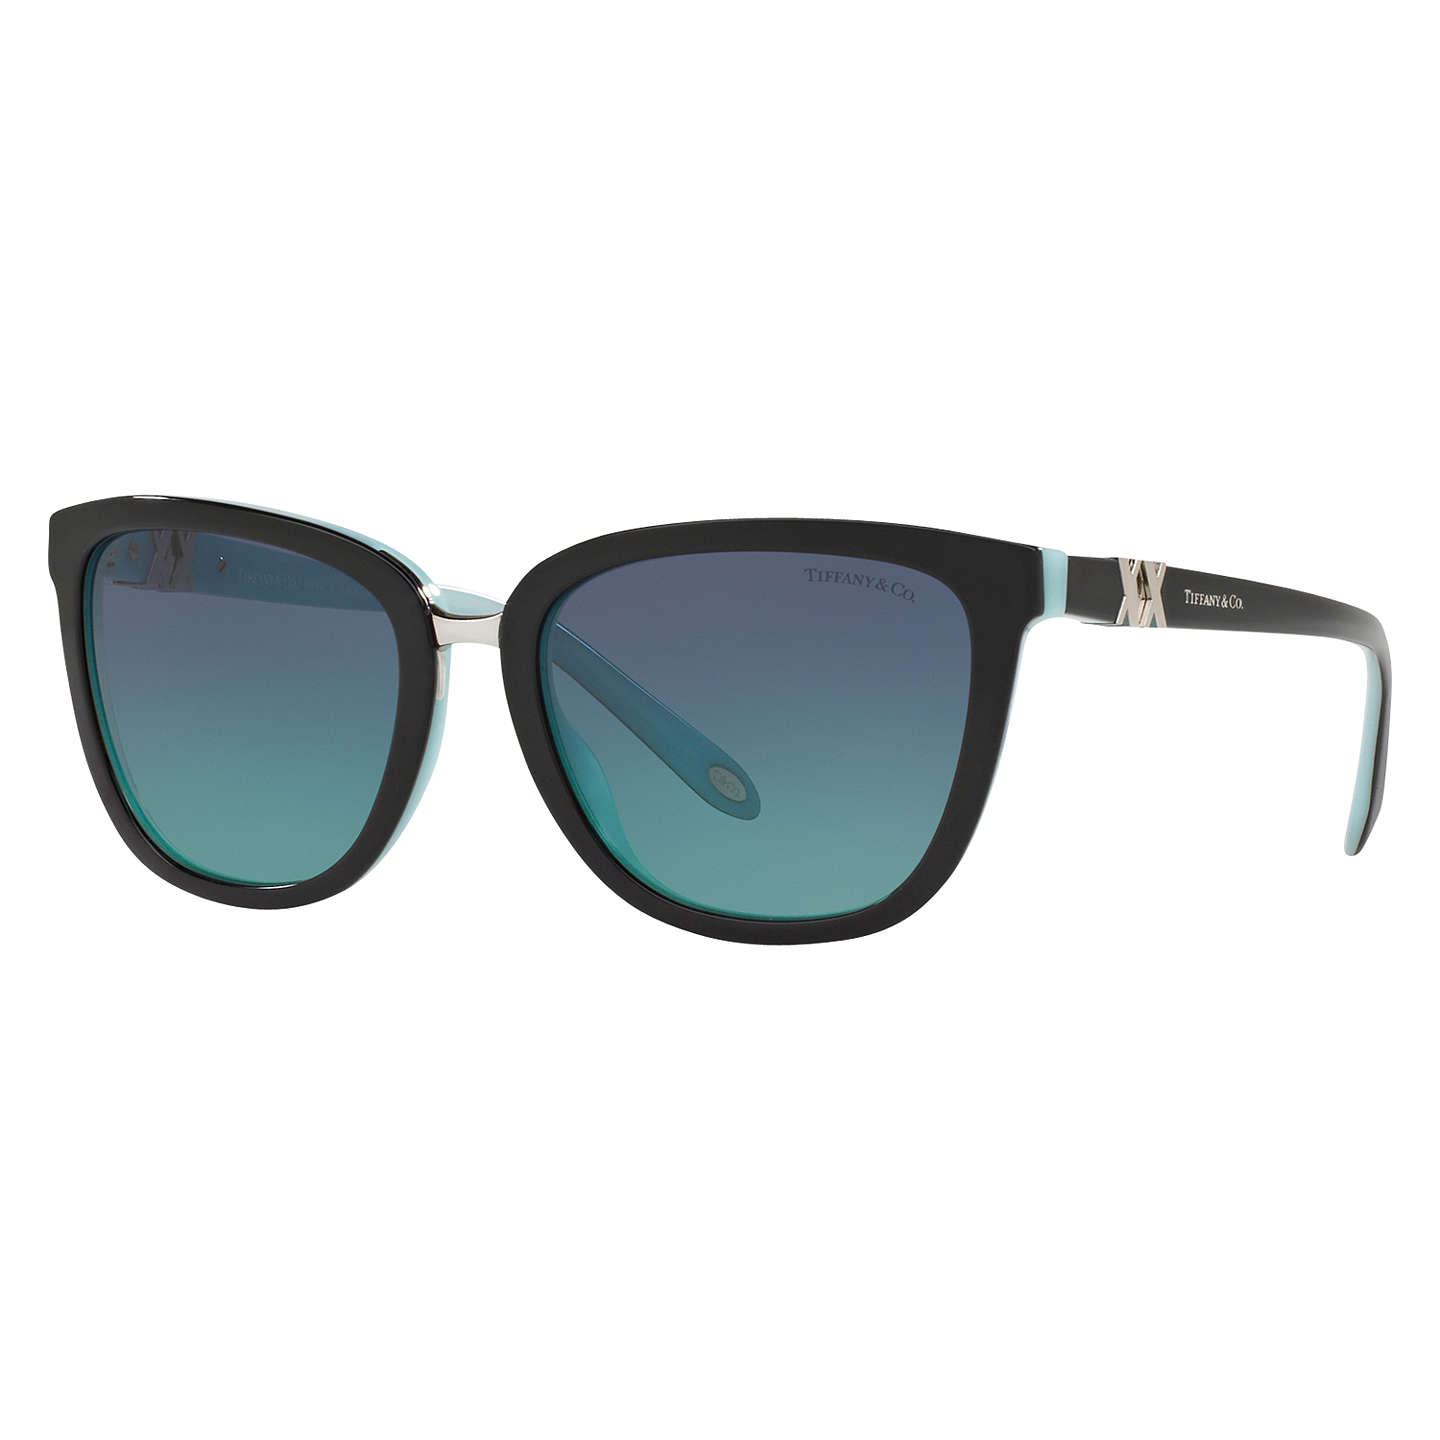 Tiffany & Co TF4123 D-Frame Sunglasses at John Lewis